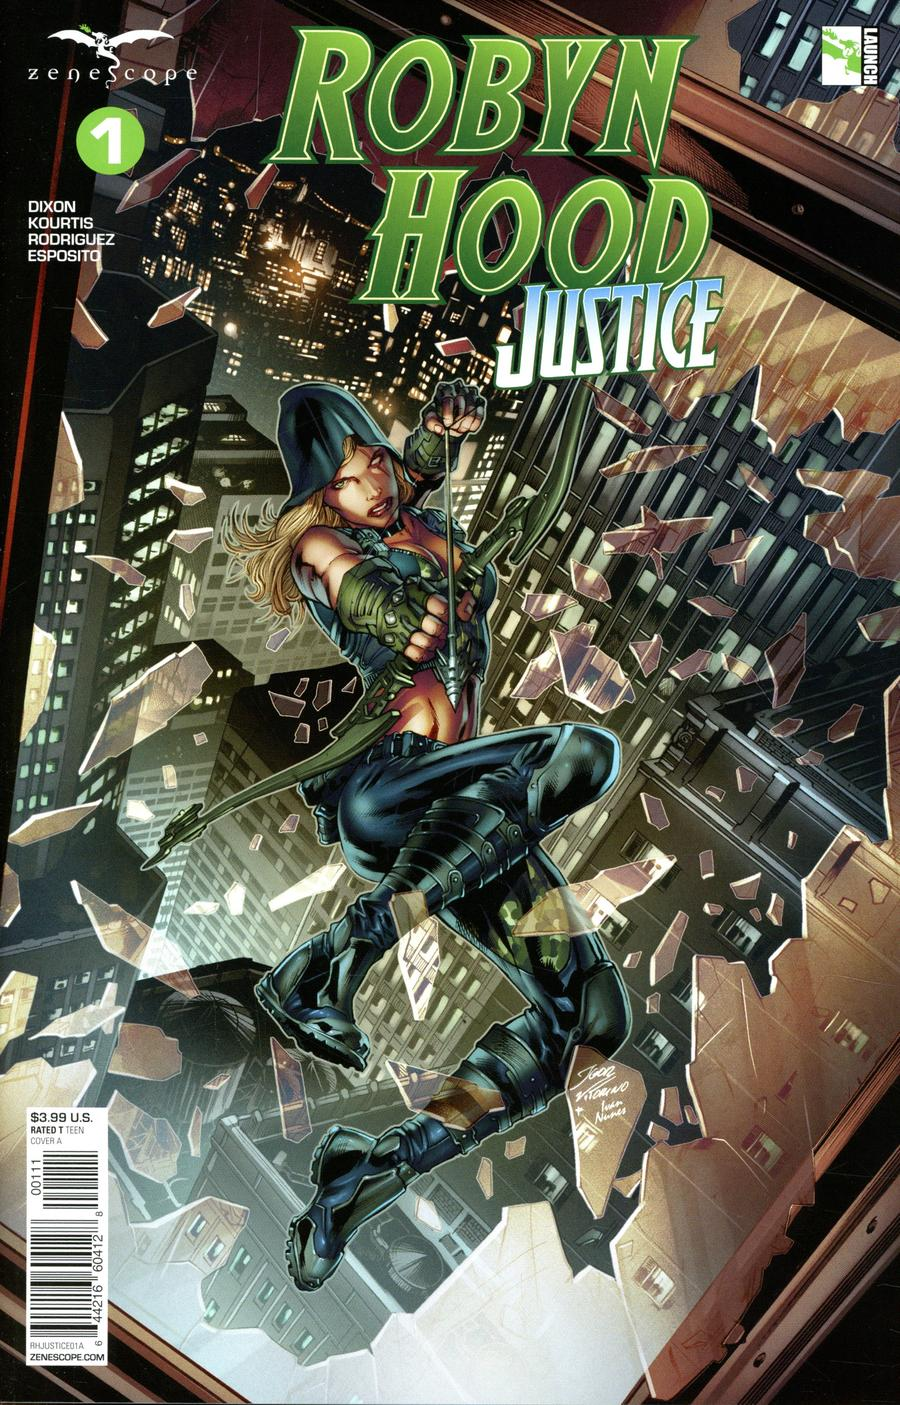 Grimm Fairy Tales Presents Robyn Hood Justice #1 Cover A Igor Vitorino